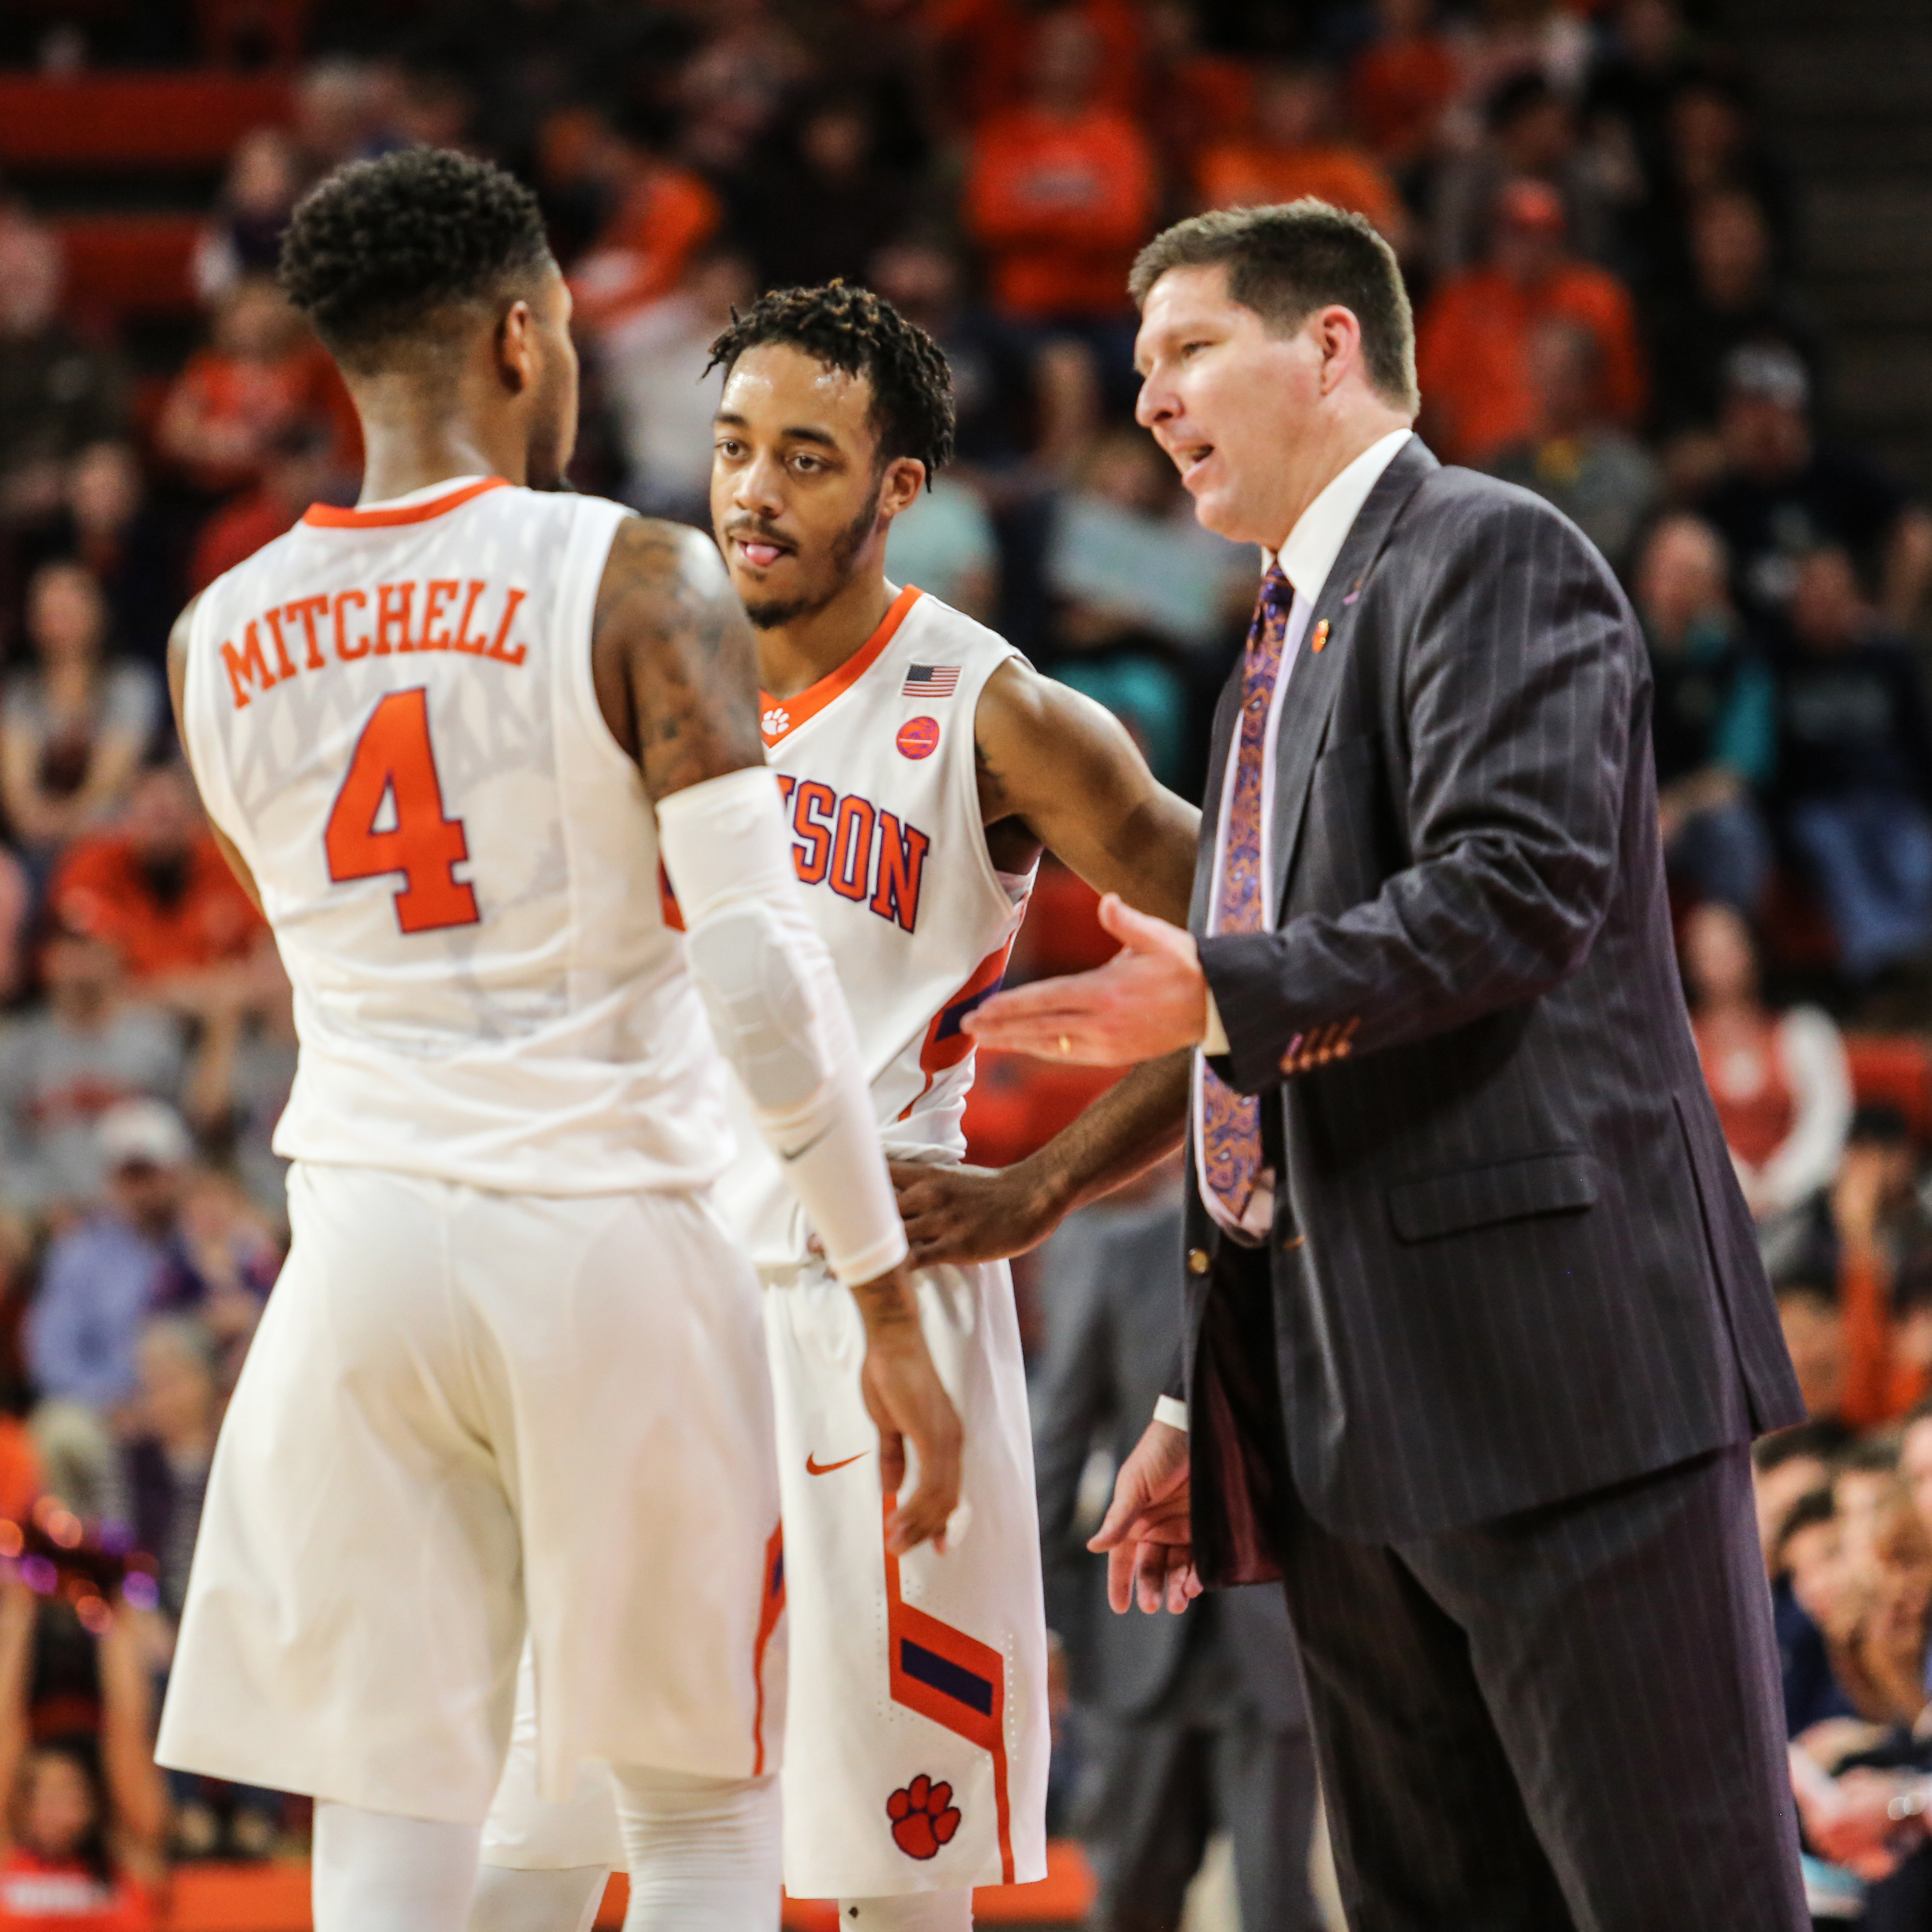 Tigers Close Non-Conference Strong